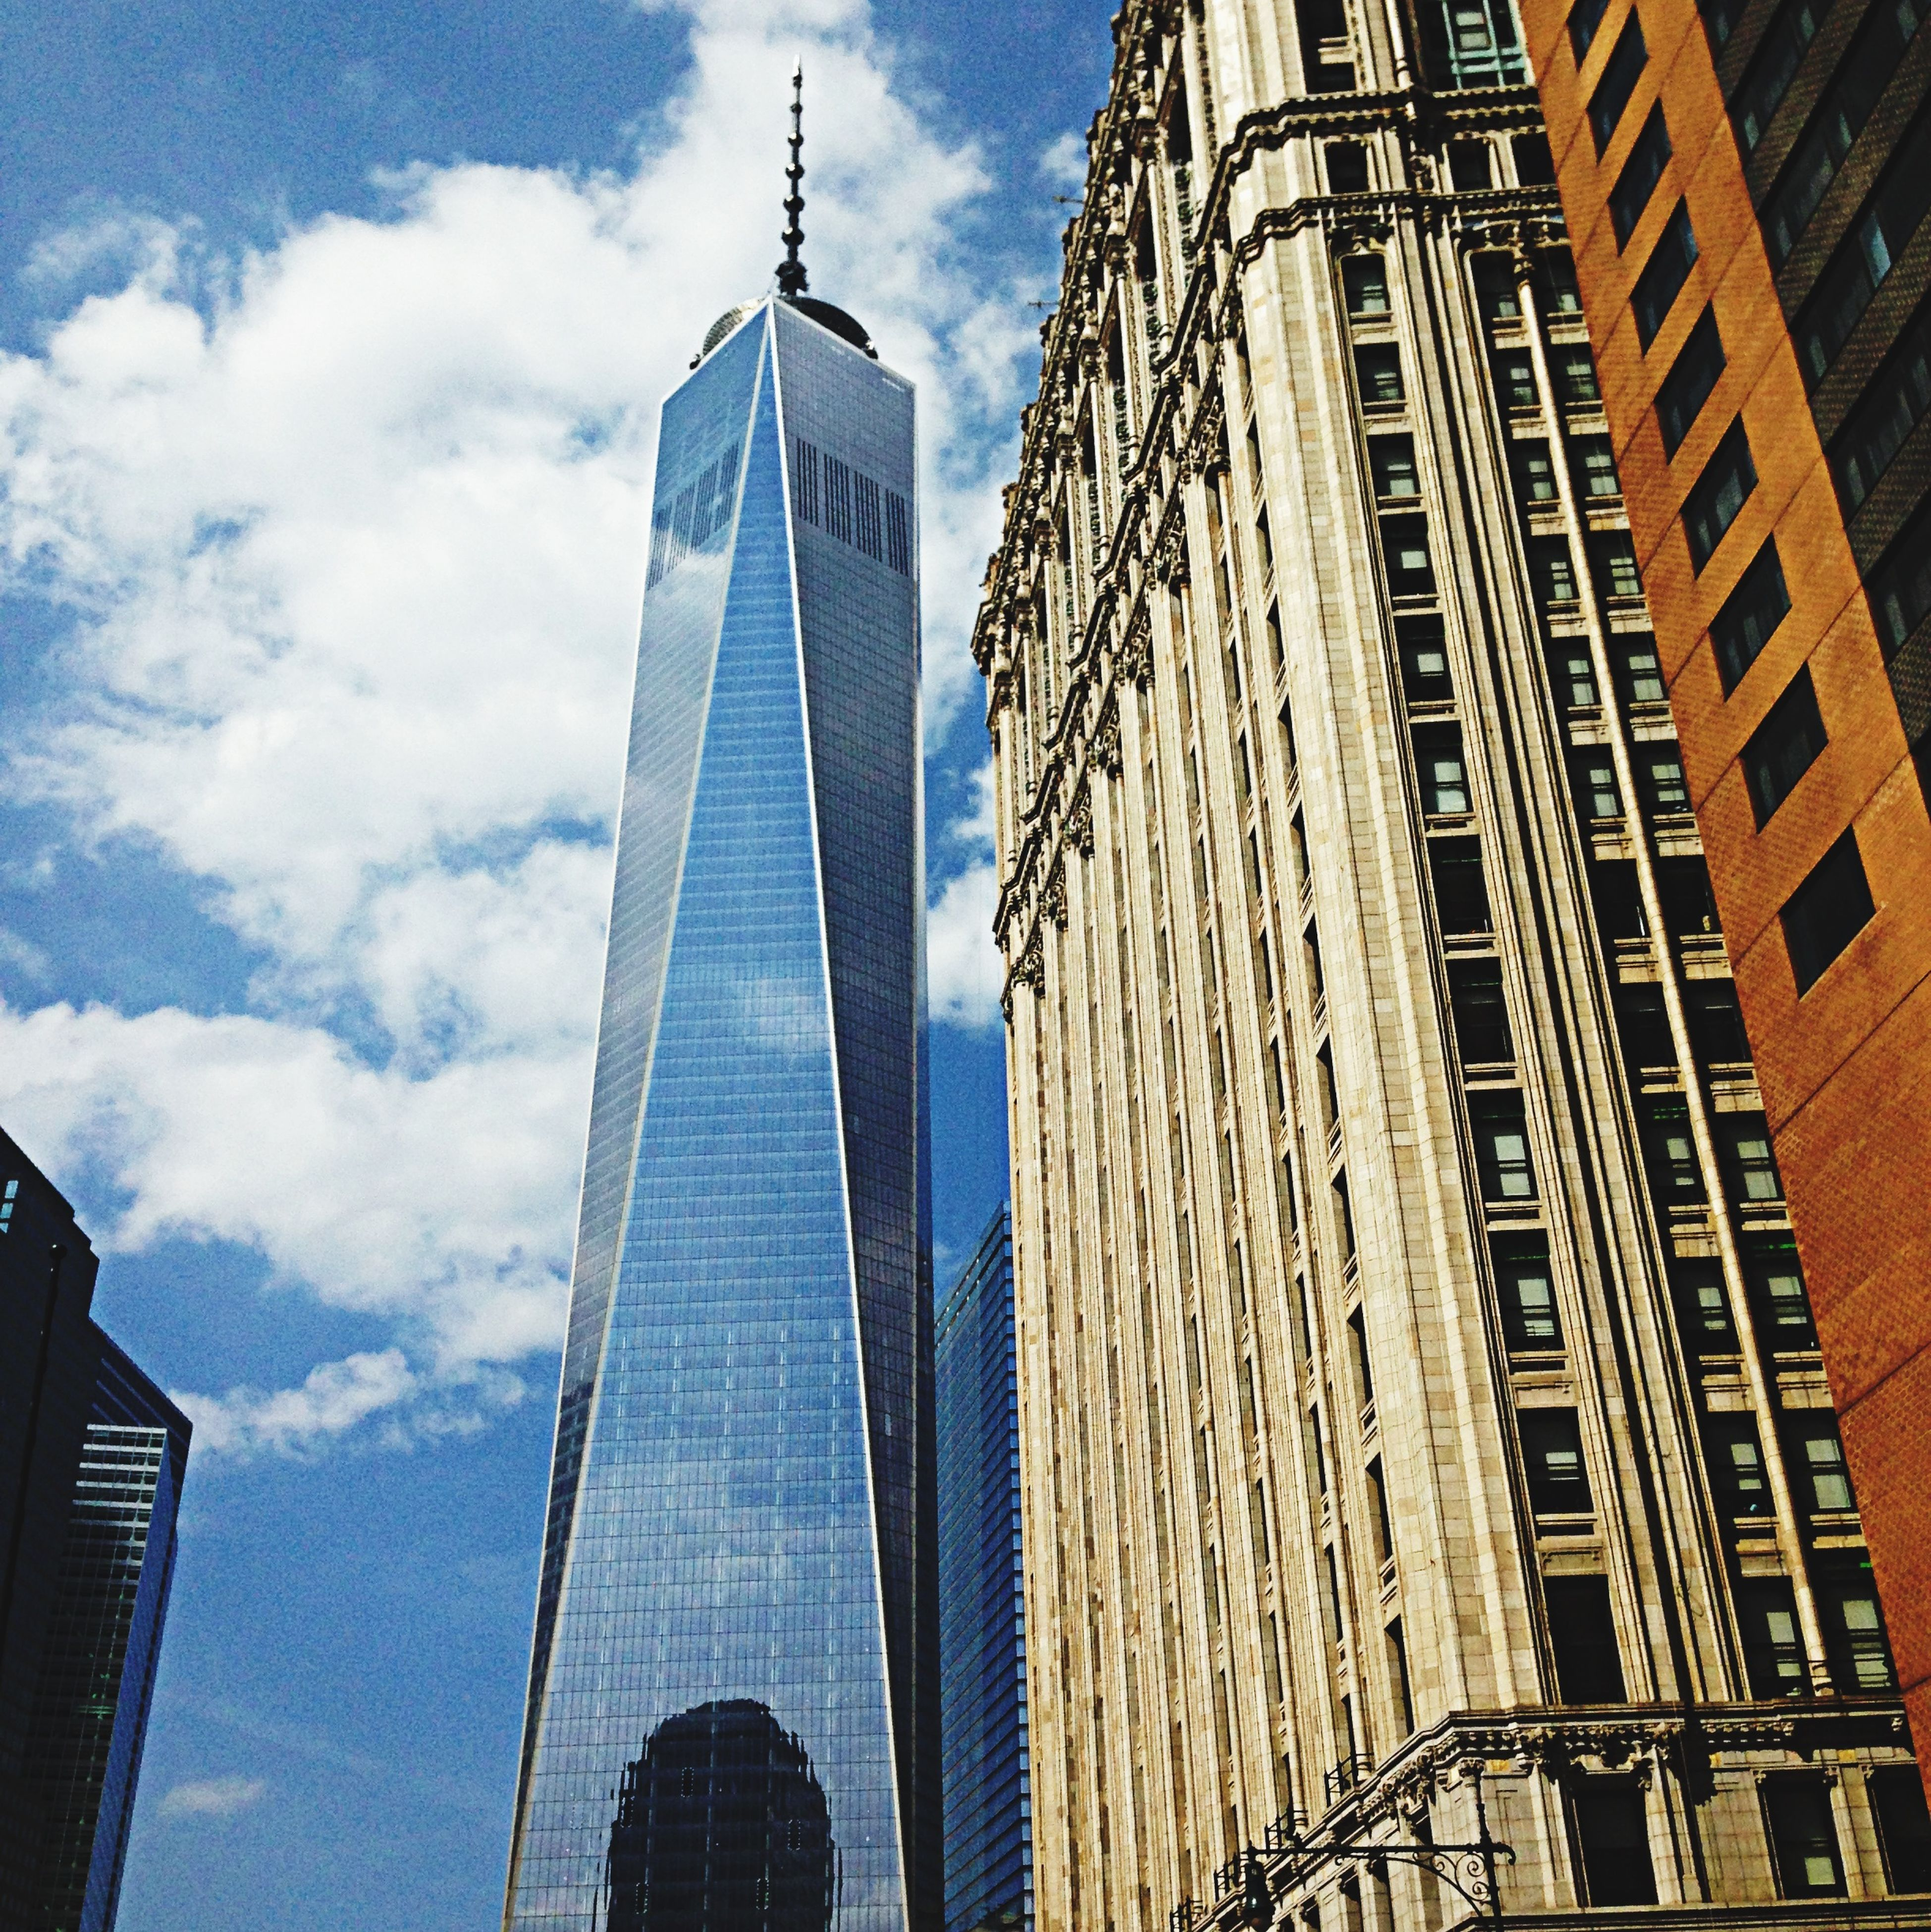 architecture, skyscraper, building exterior, tall - high, built structure, tower, modern, city, office building, low angle view, capital cities, sky, financial district, famous place, travel destinations, international landmark, tall, reflection, glass - material, cloud - sky